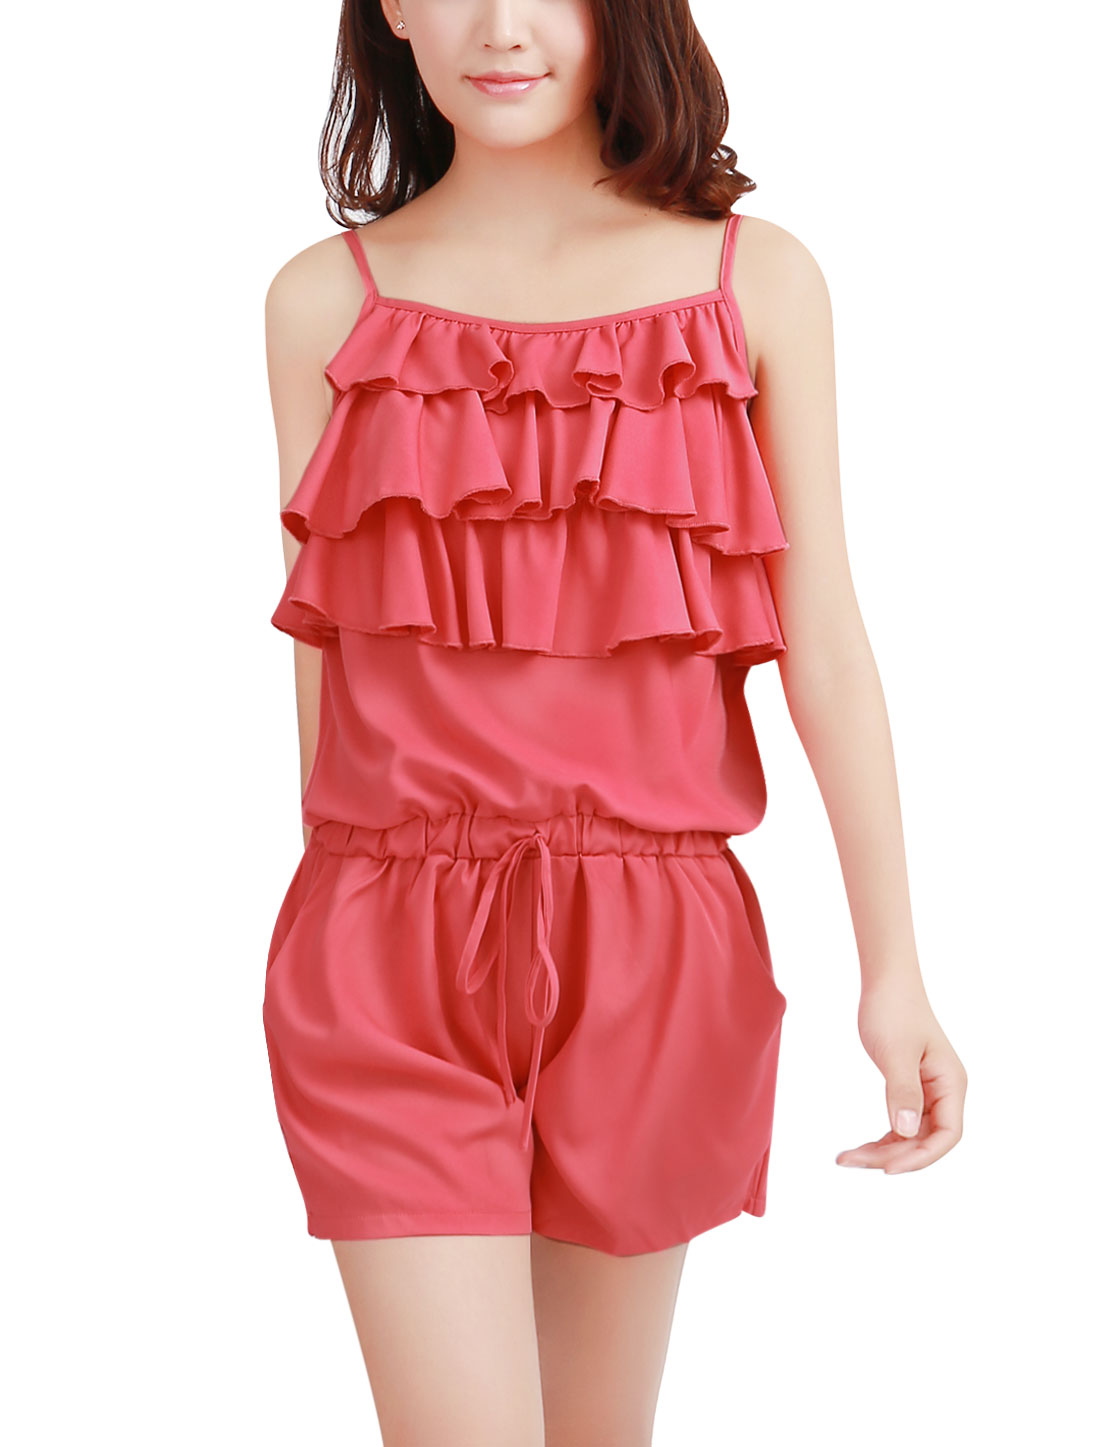 Pure Watermelon Red Elastic Drawstring Waist Romper M for Lady